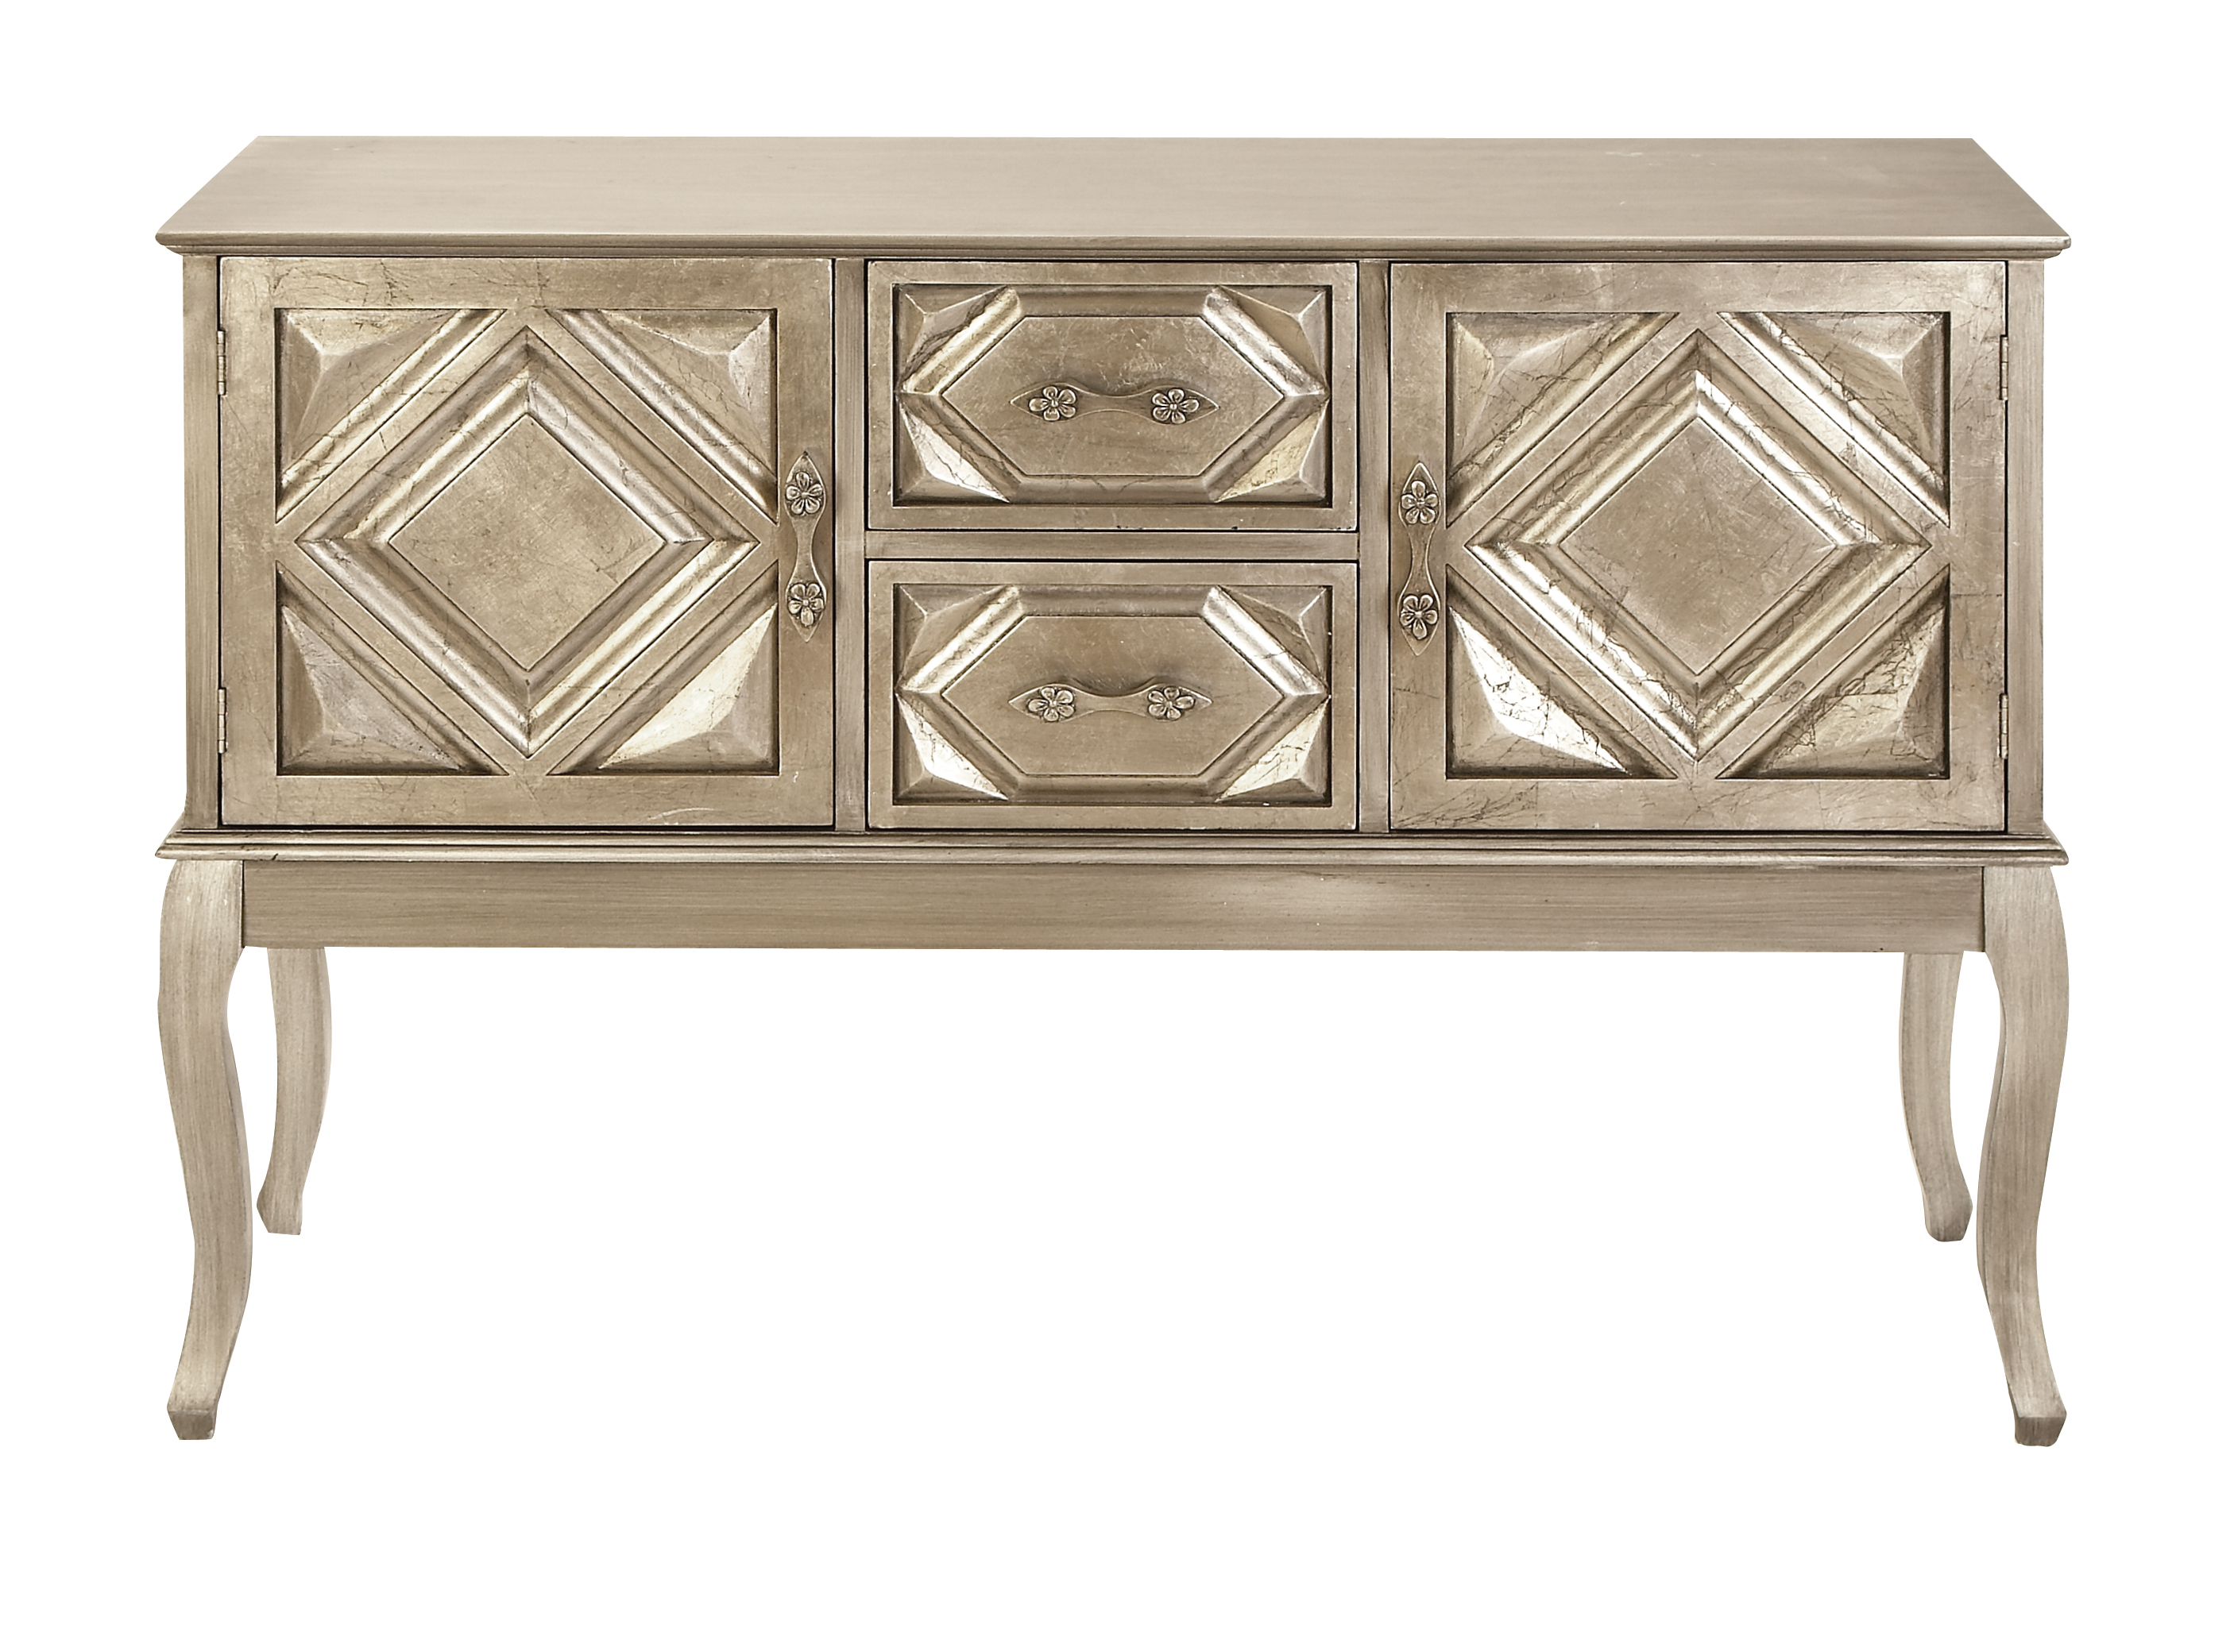 Decmode 33 X 48 Inch Traditional Golden Wood Buffet Table, White Gold    Walmart.com